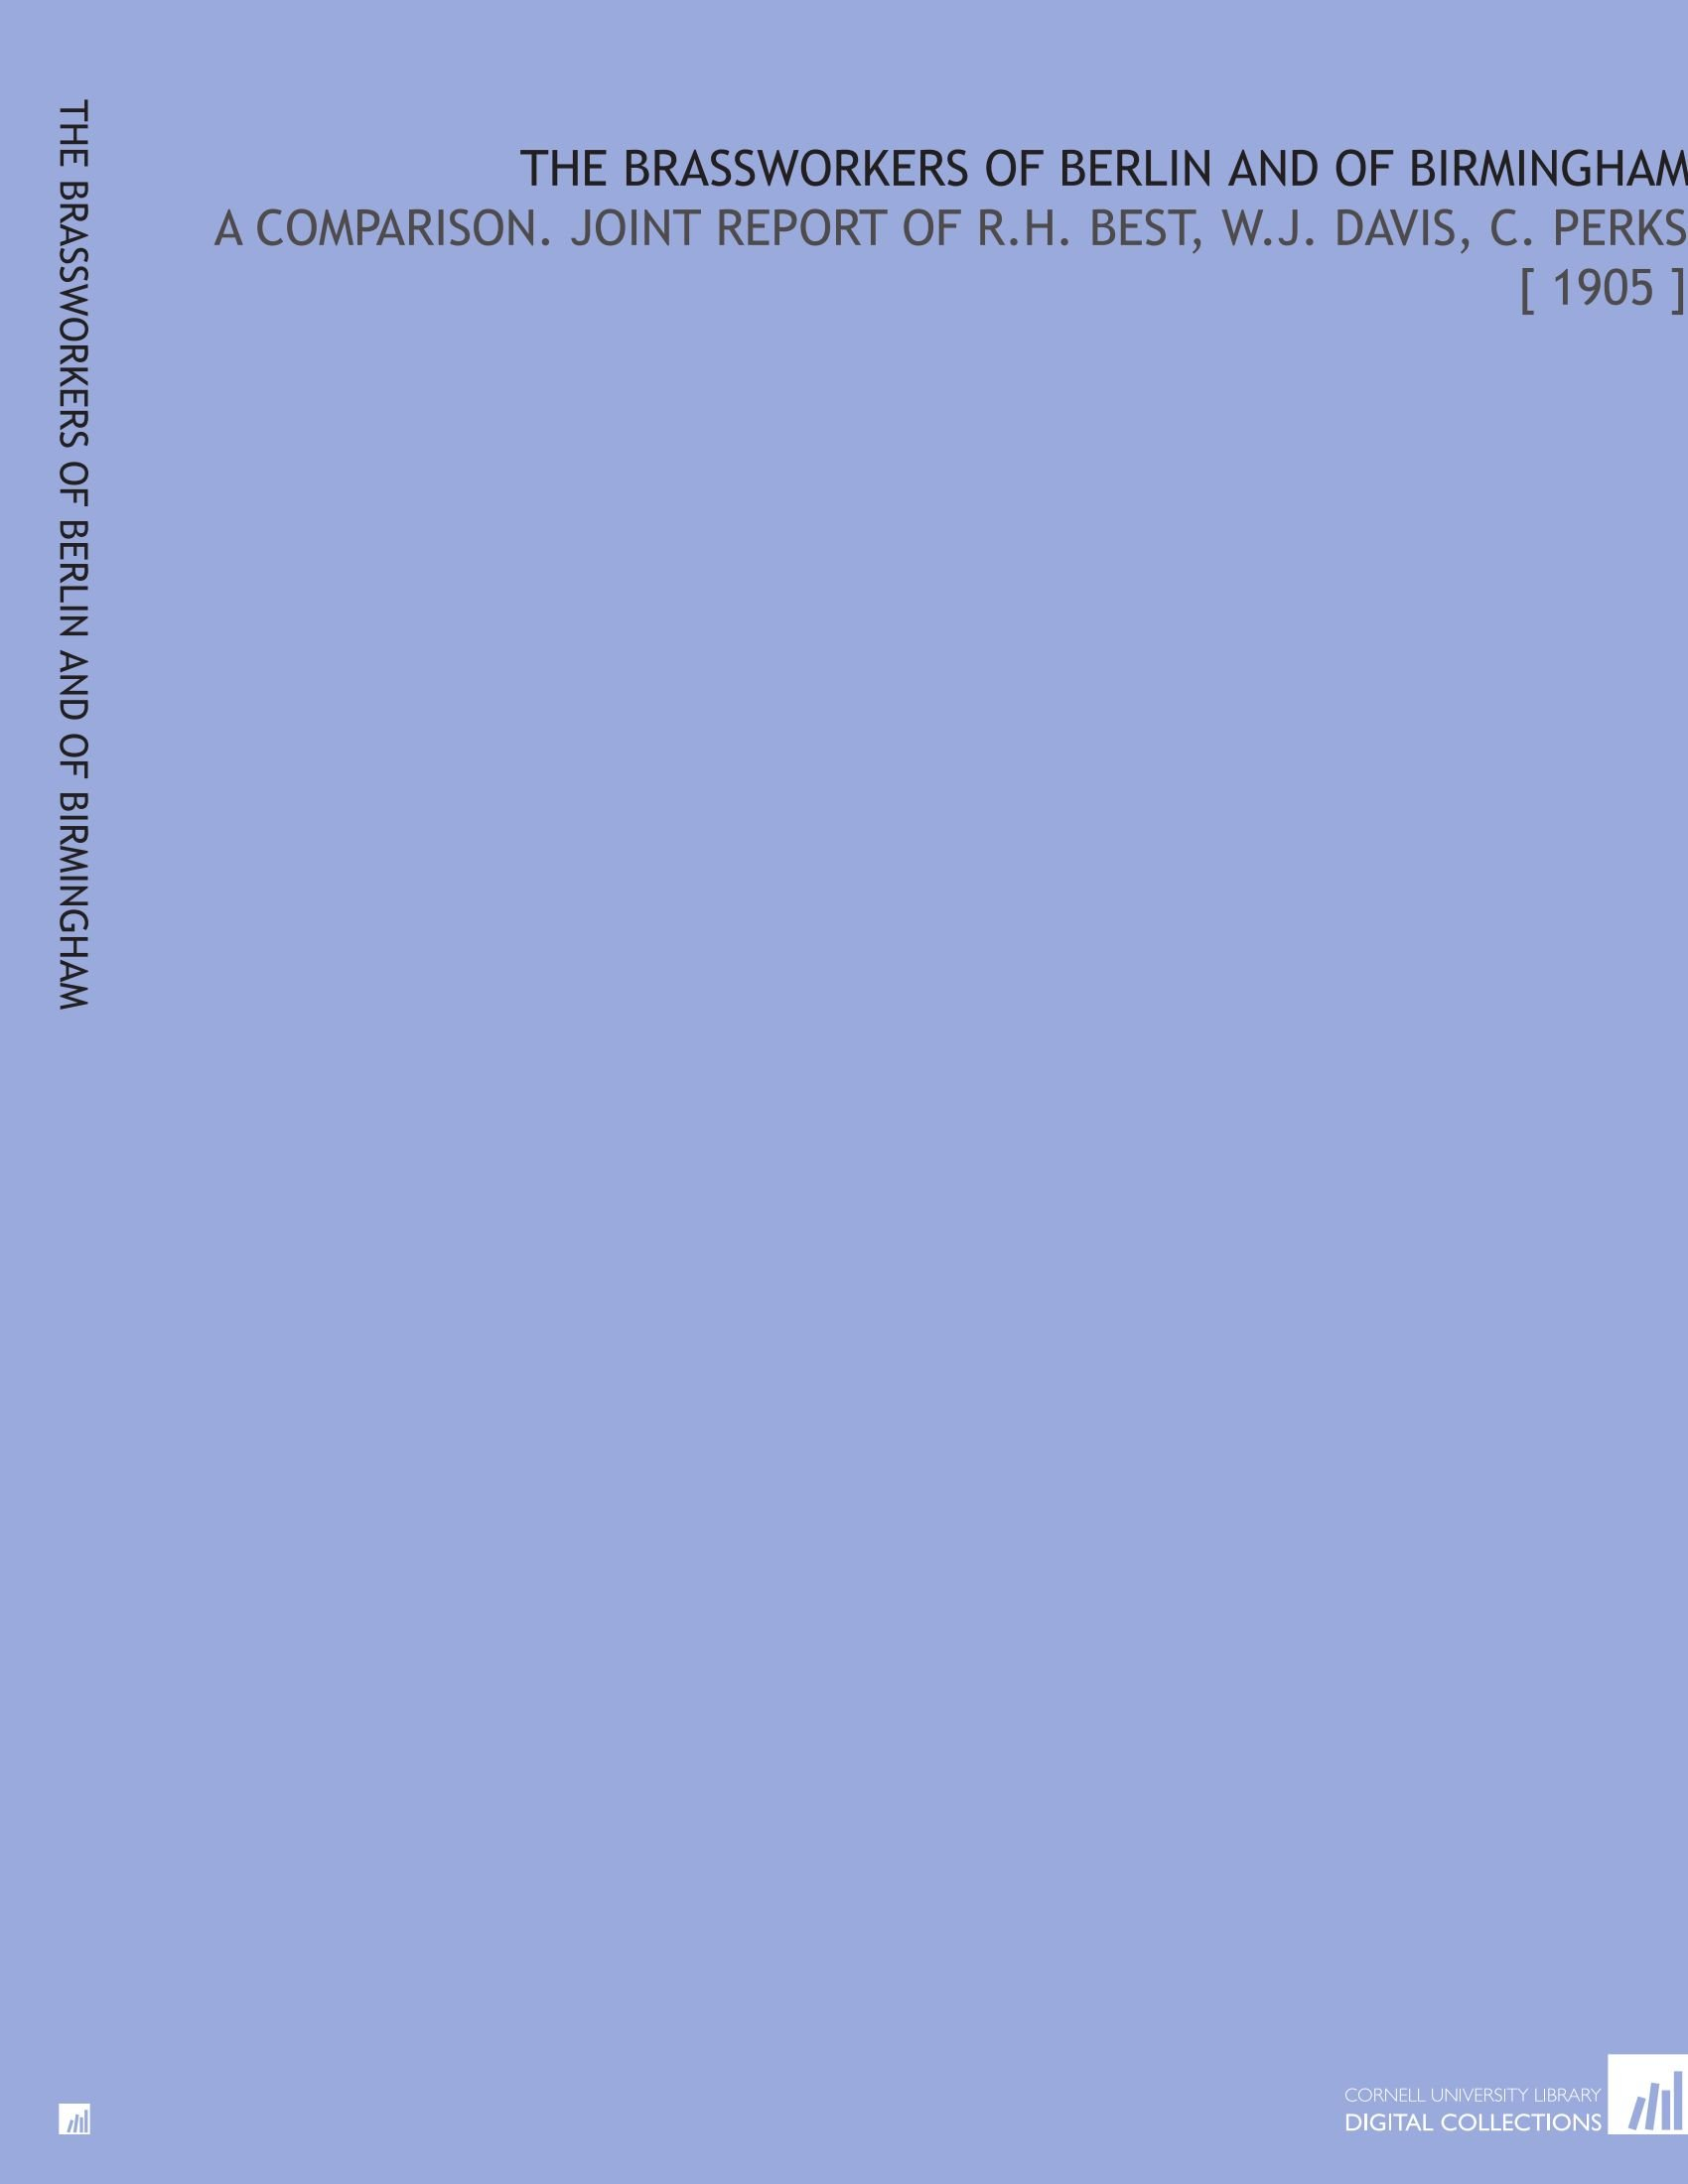 The Brassworkers of Berlin and of Birmingham: A Comparison. Joint Report of R.H. Best, W.J. Davis, C. Perks [ 1905 ] ebook